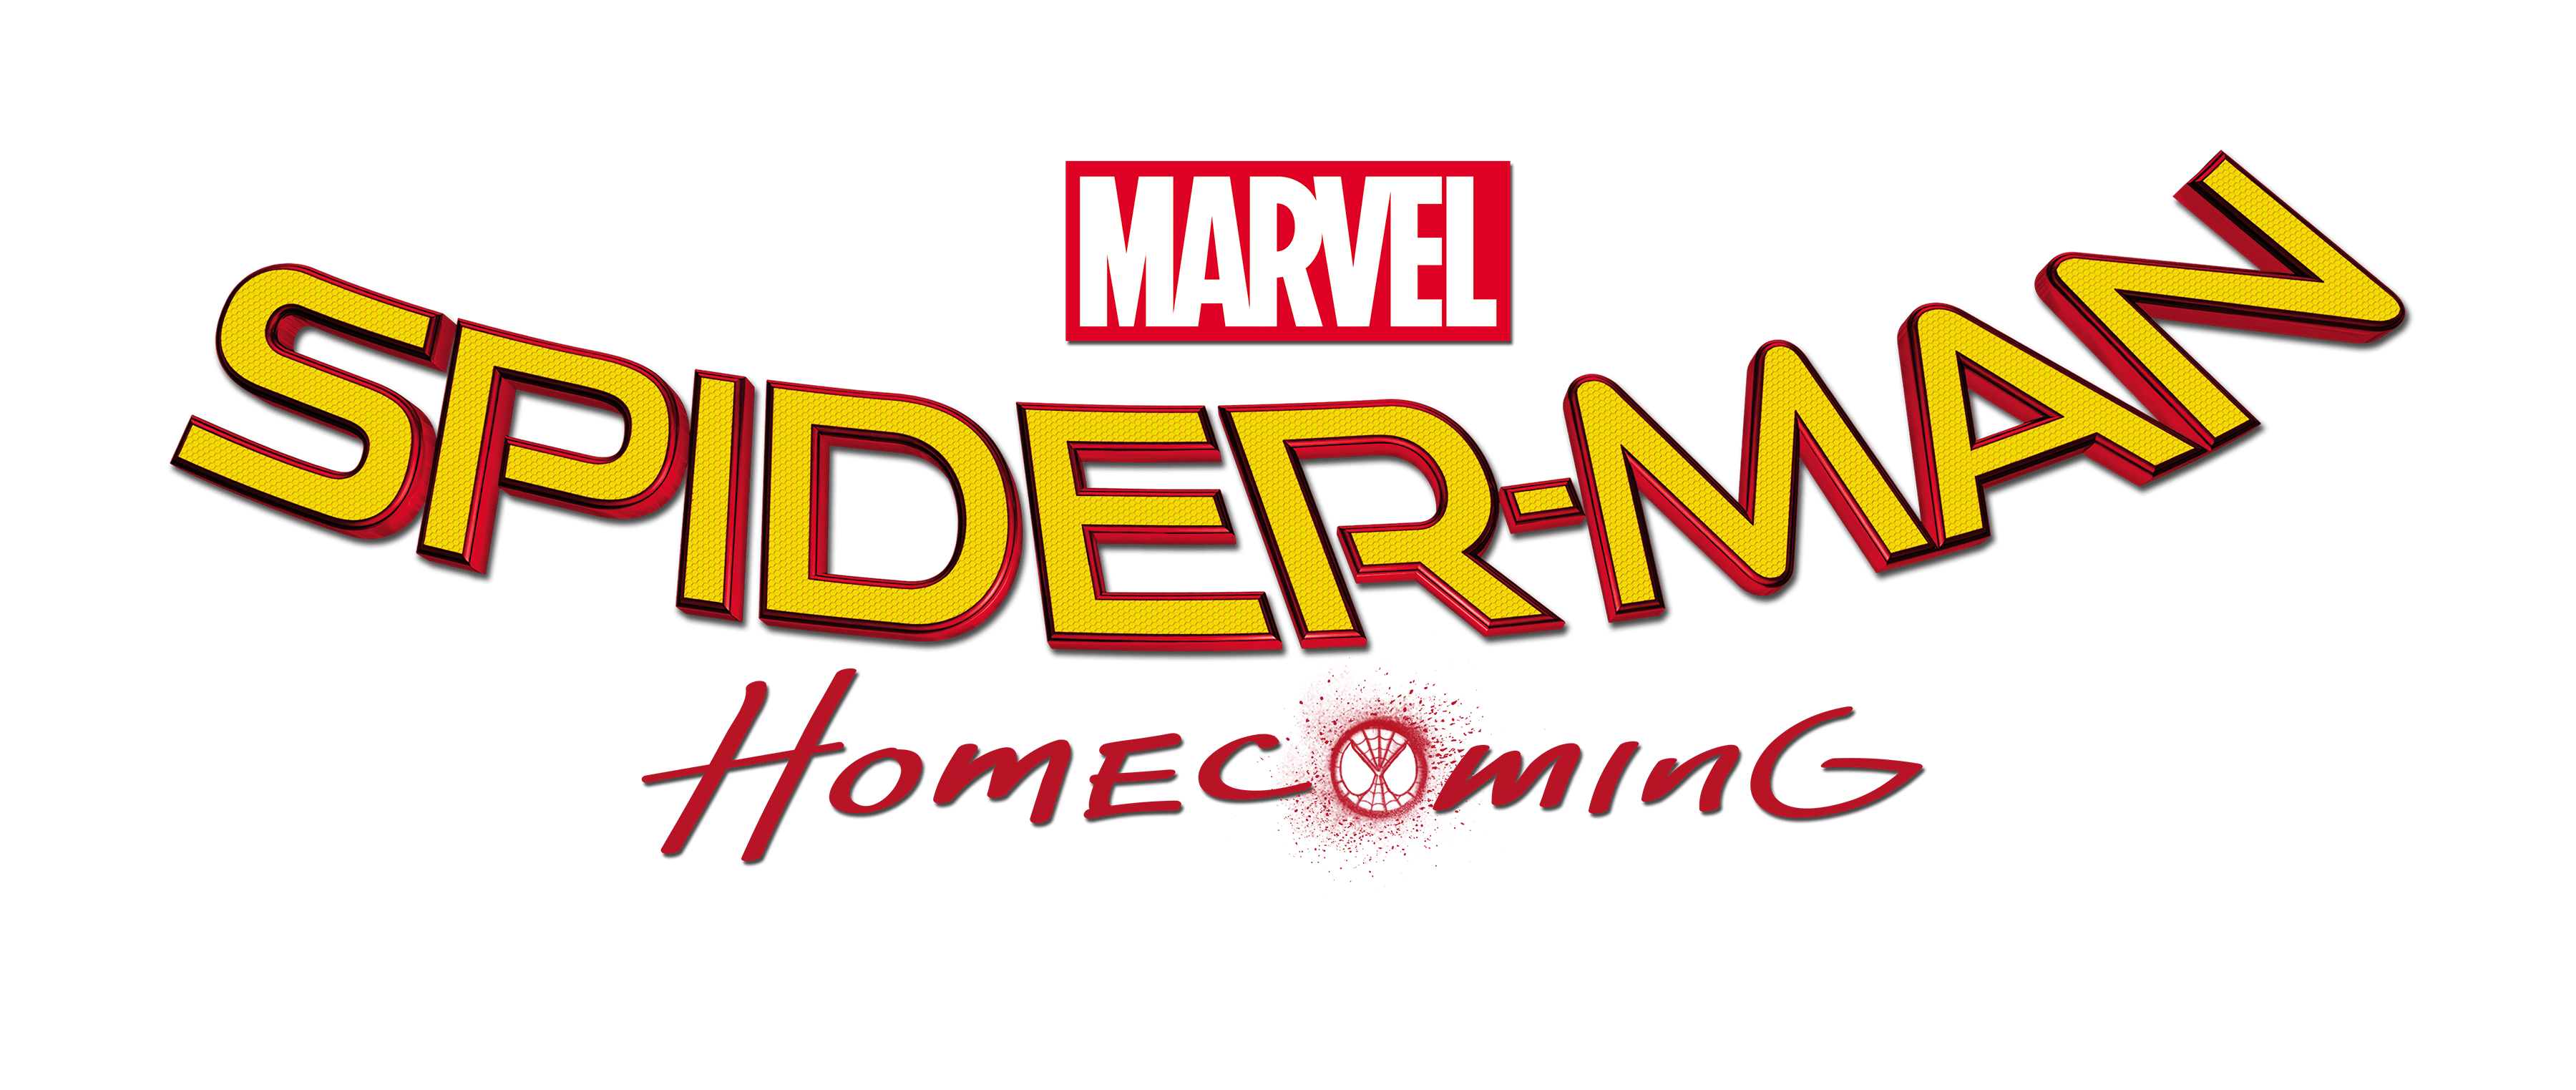 Spider man homecoming logo png. A new funko pop